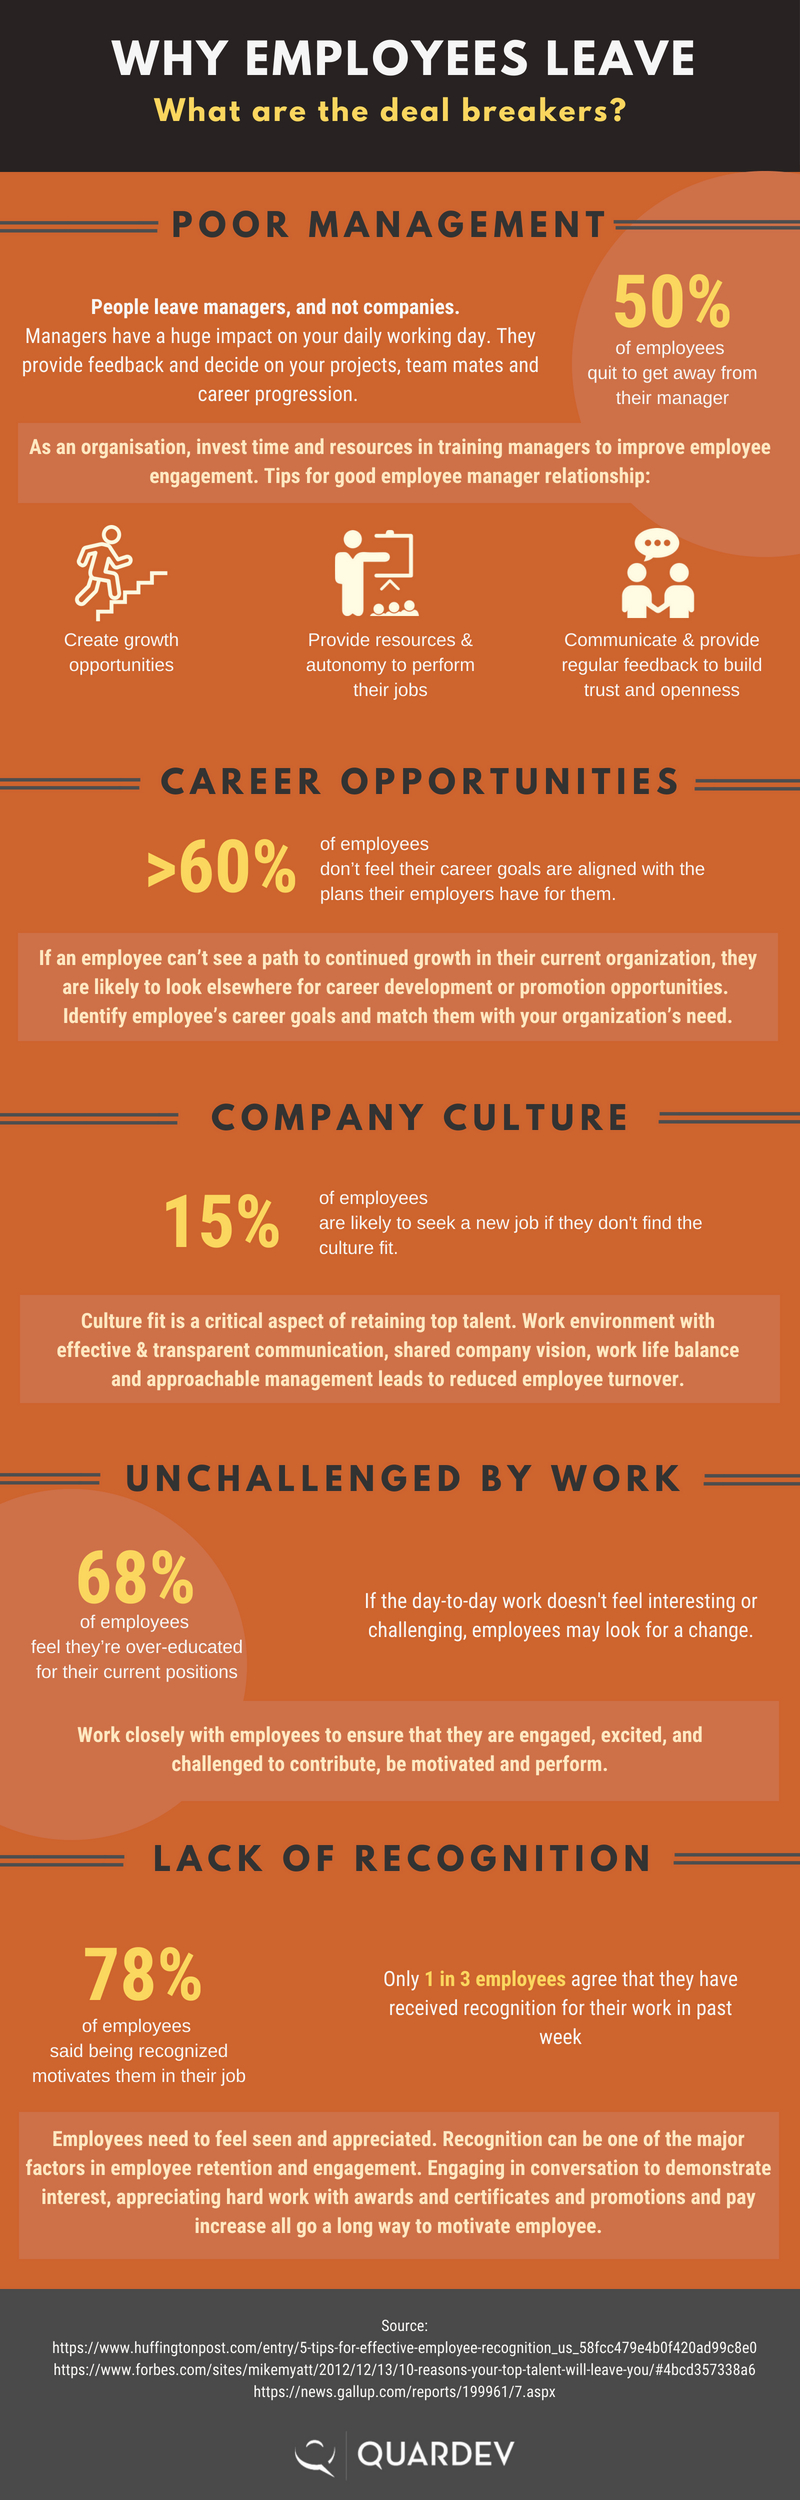 Why Employees Leave_Infographic